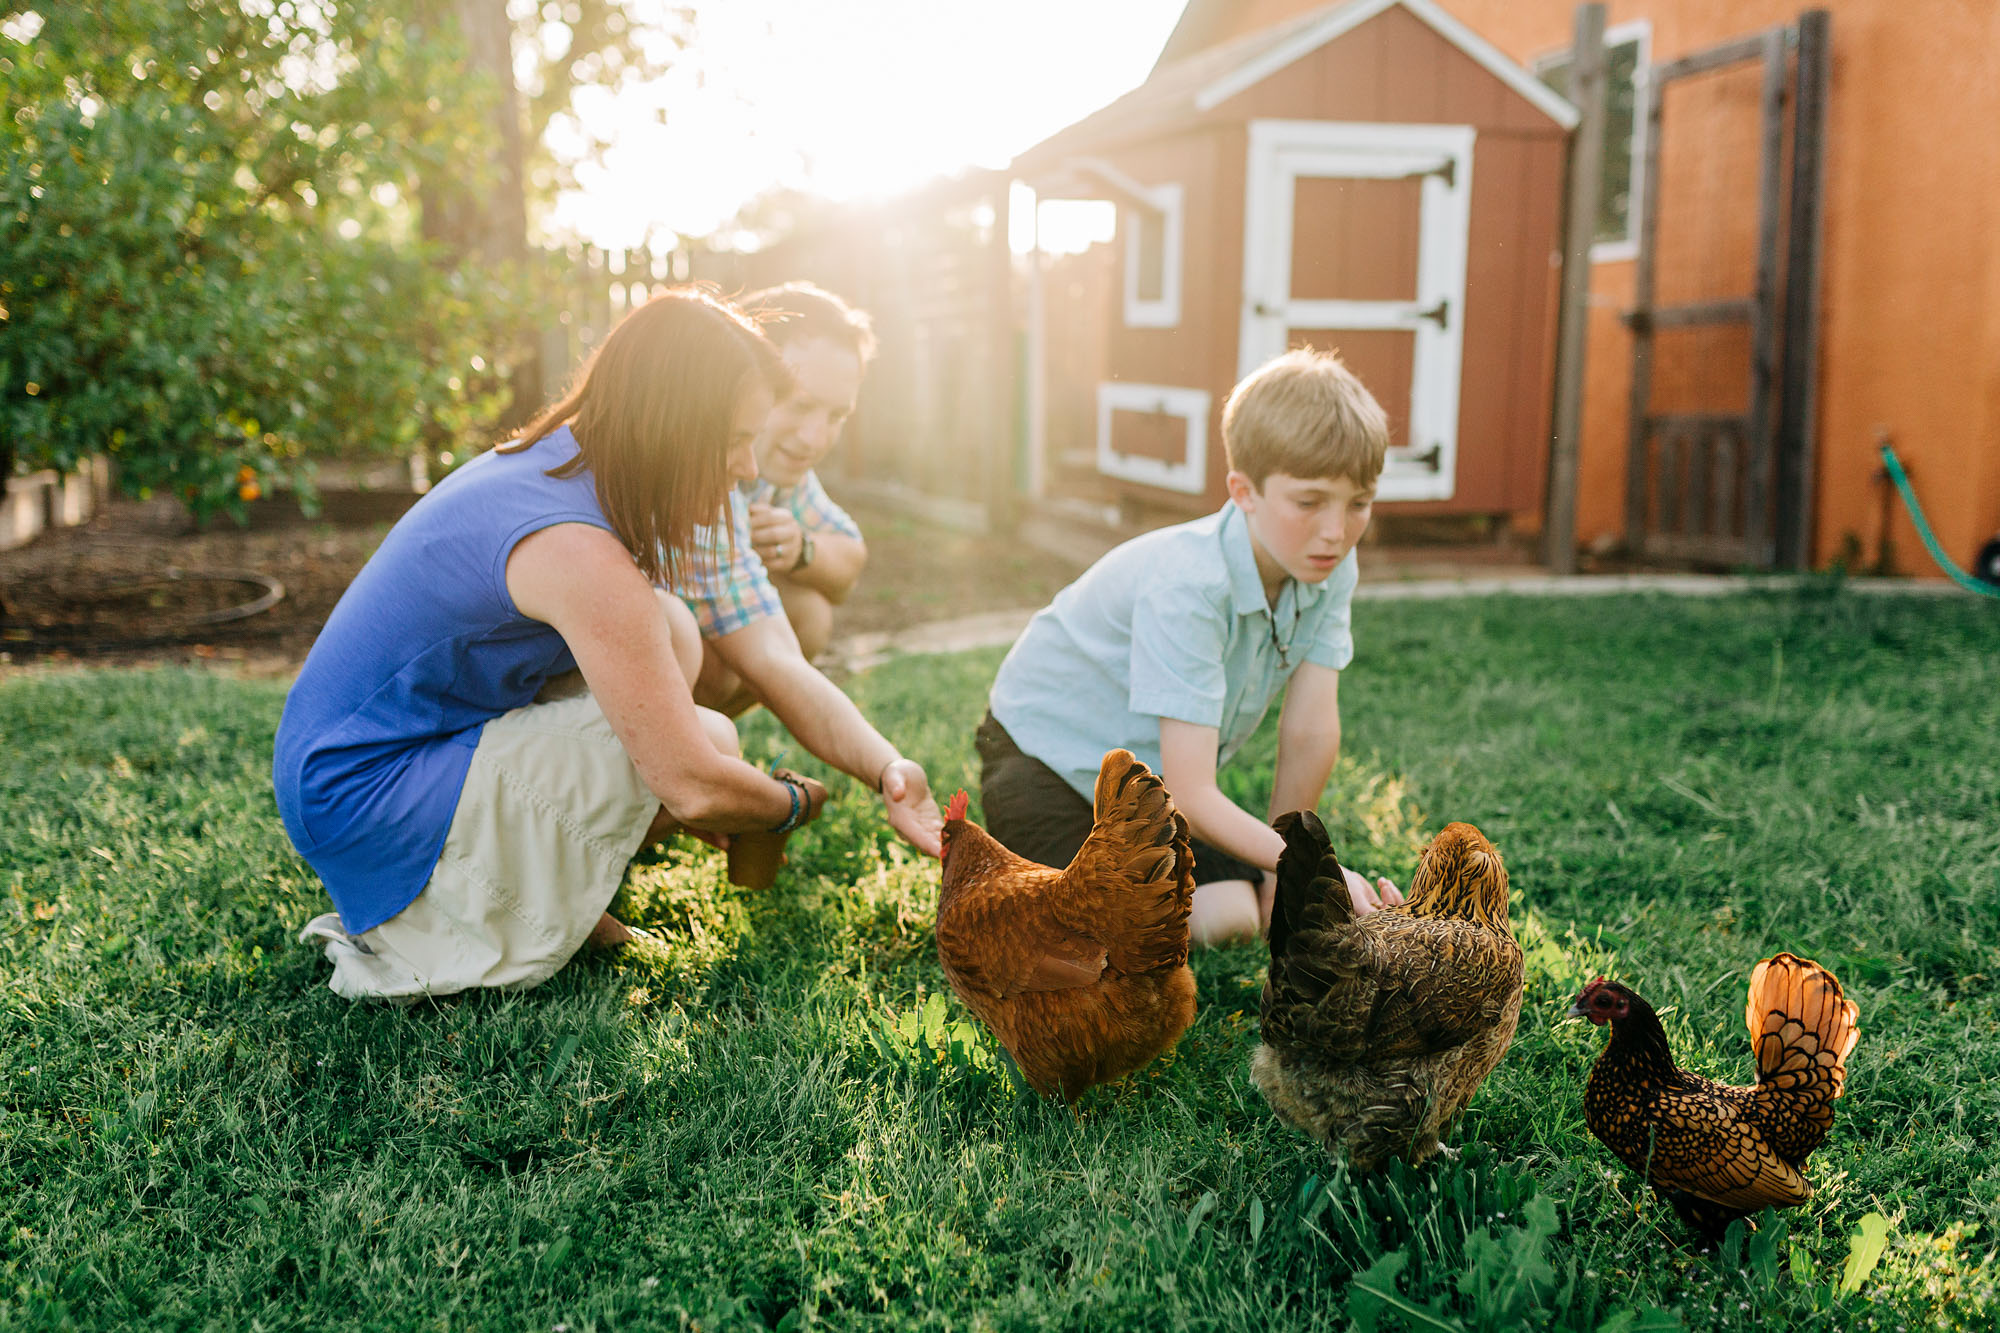 A family interacts with their chickens during a laid back lifestyle photo session in Roseville, California with local photographer Amy Wright.